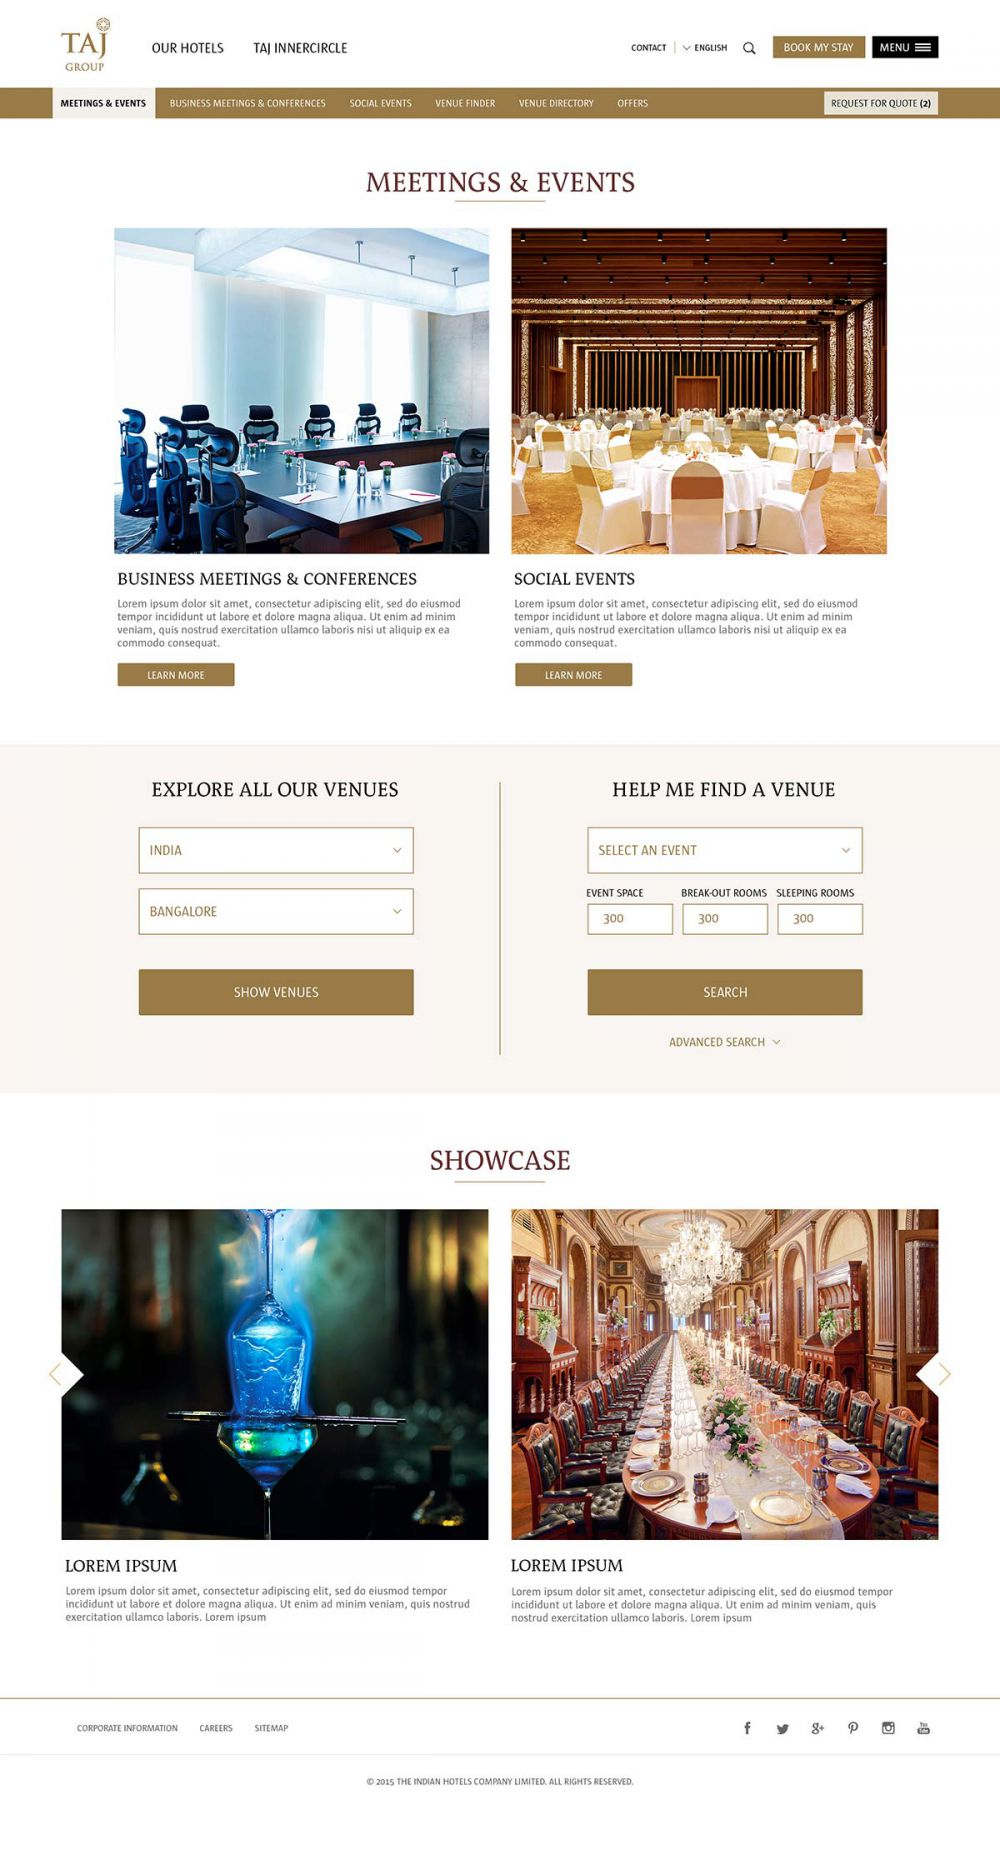 Meetings and events page